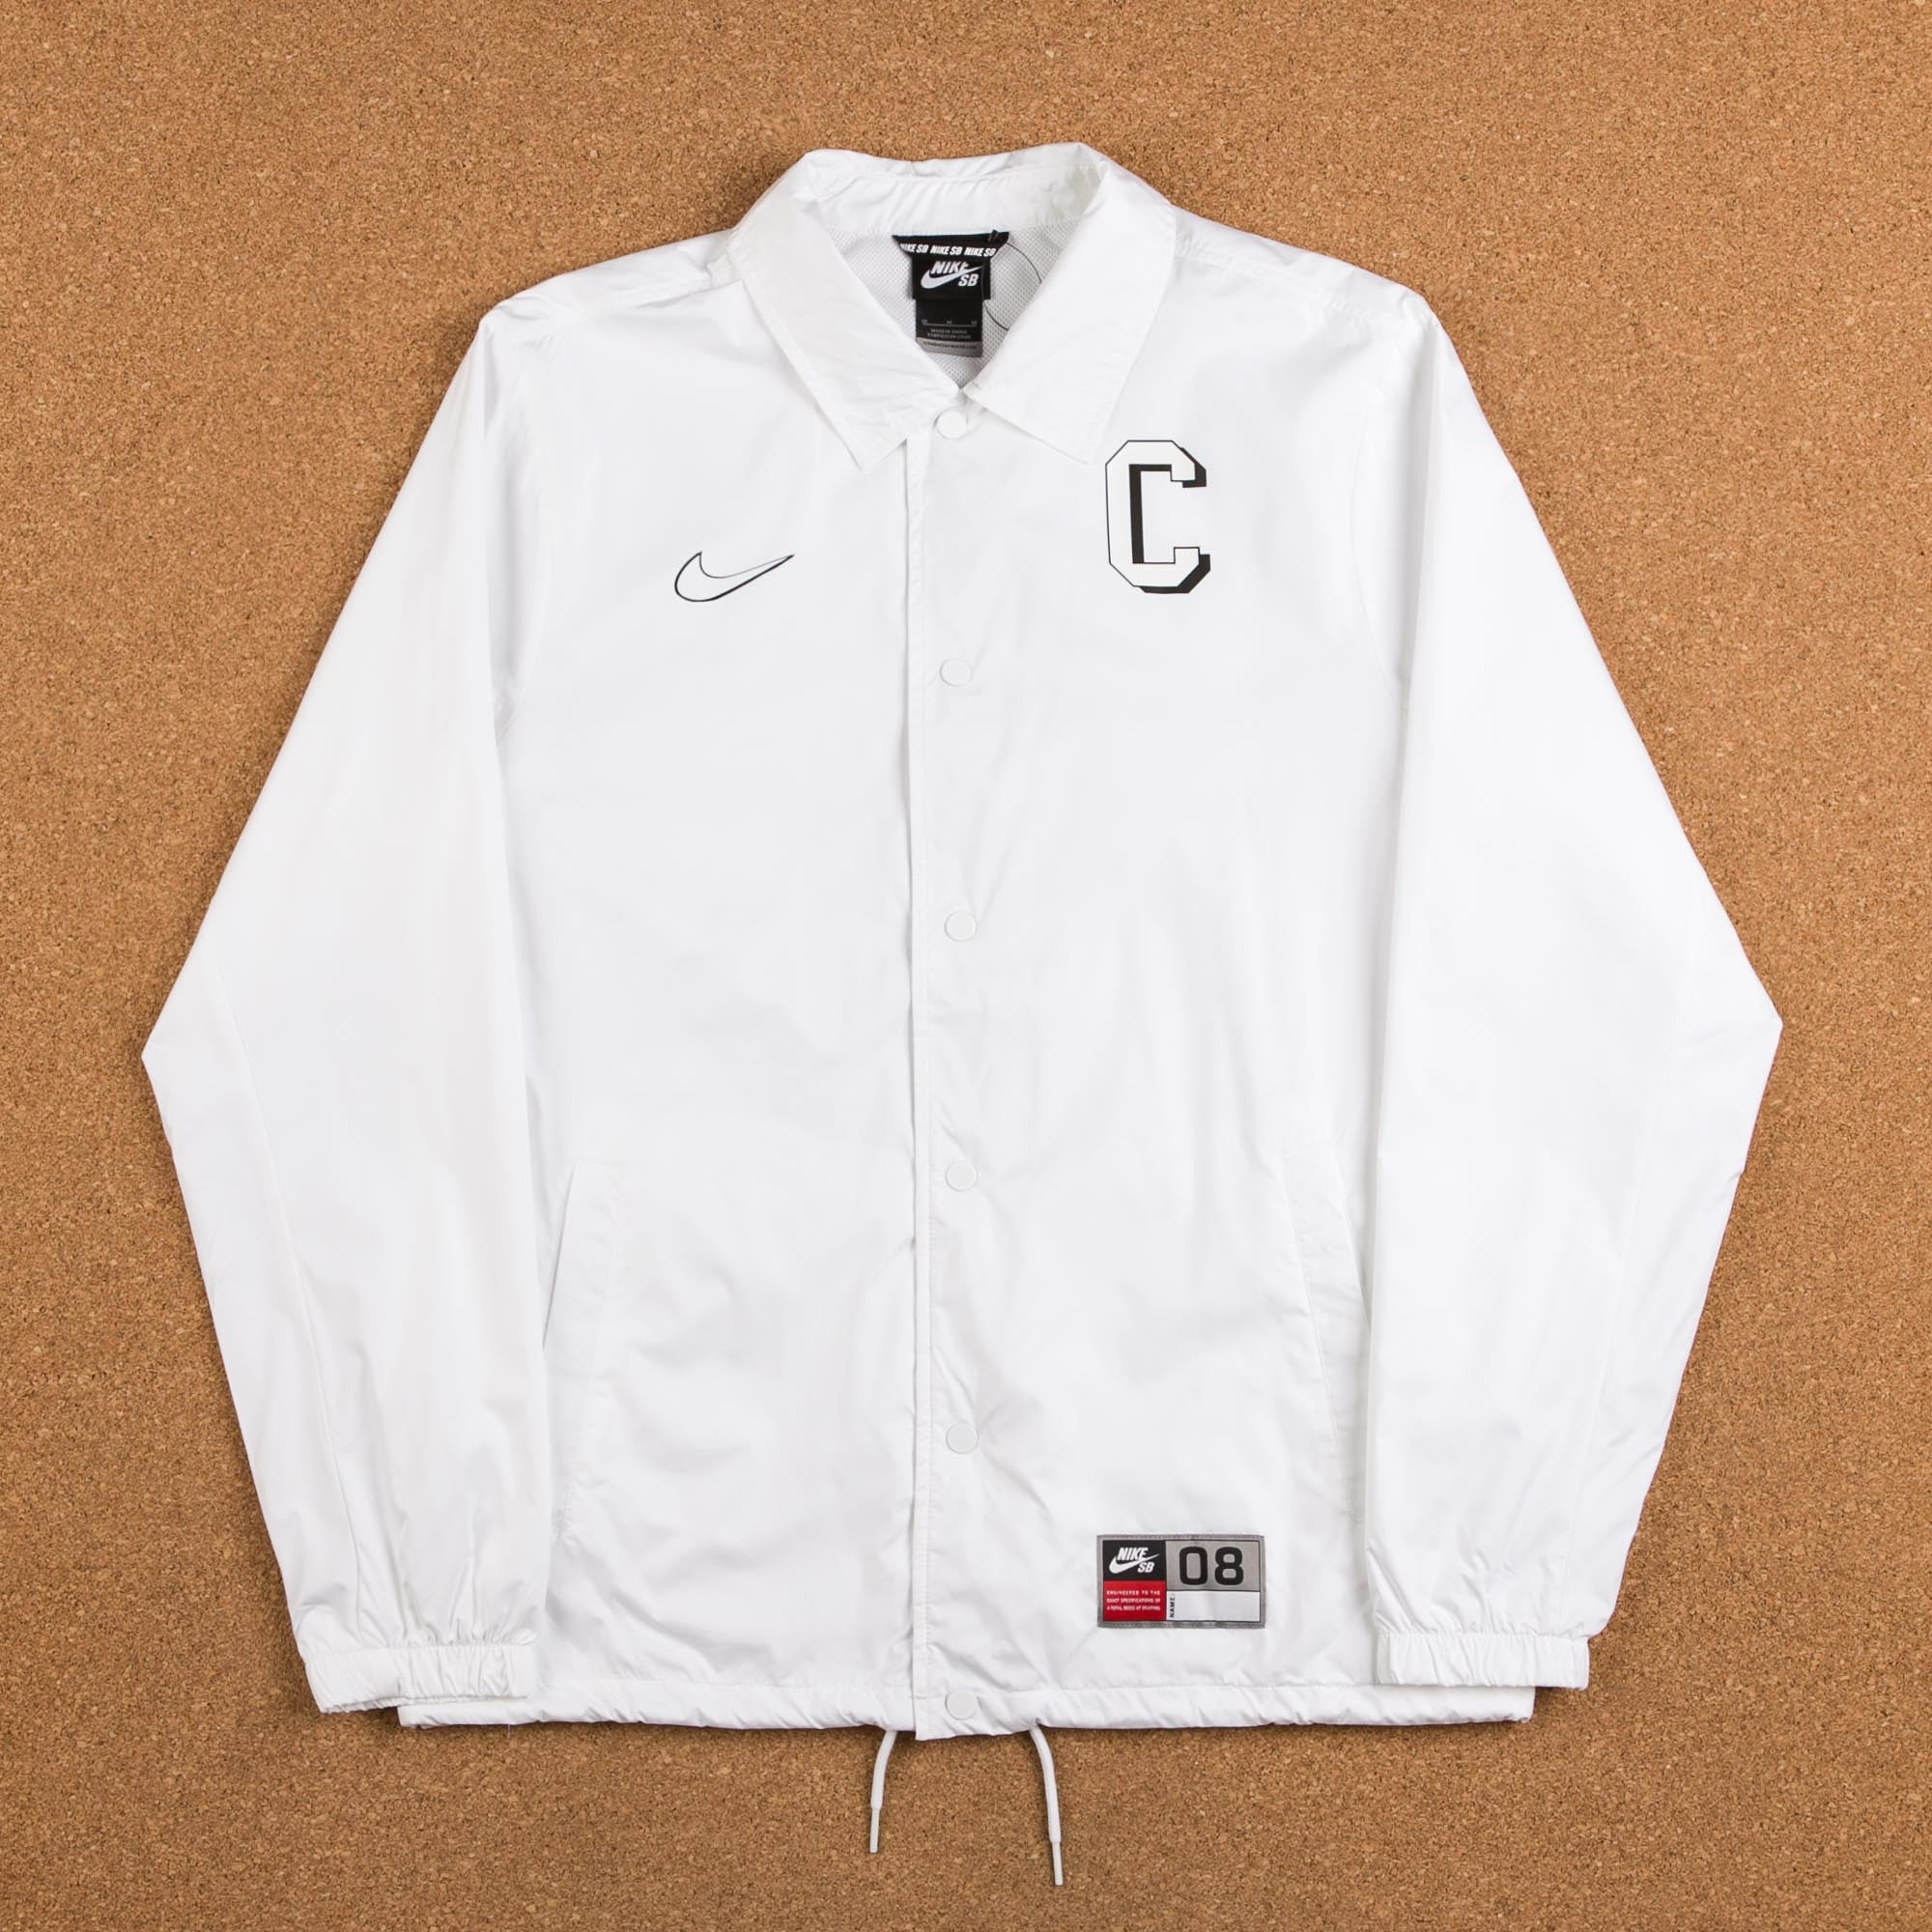 ae6c83f7e013 Nike SB Shield Jacket - White   Black